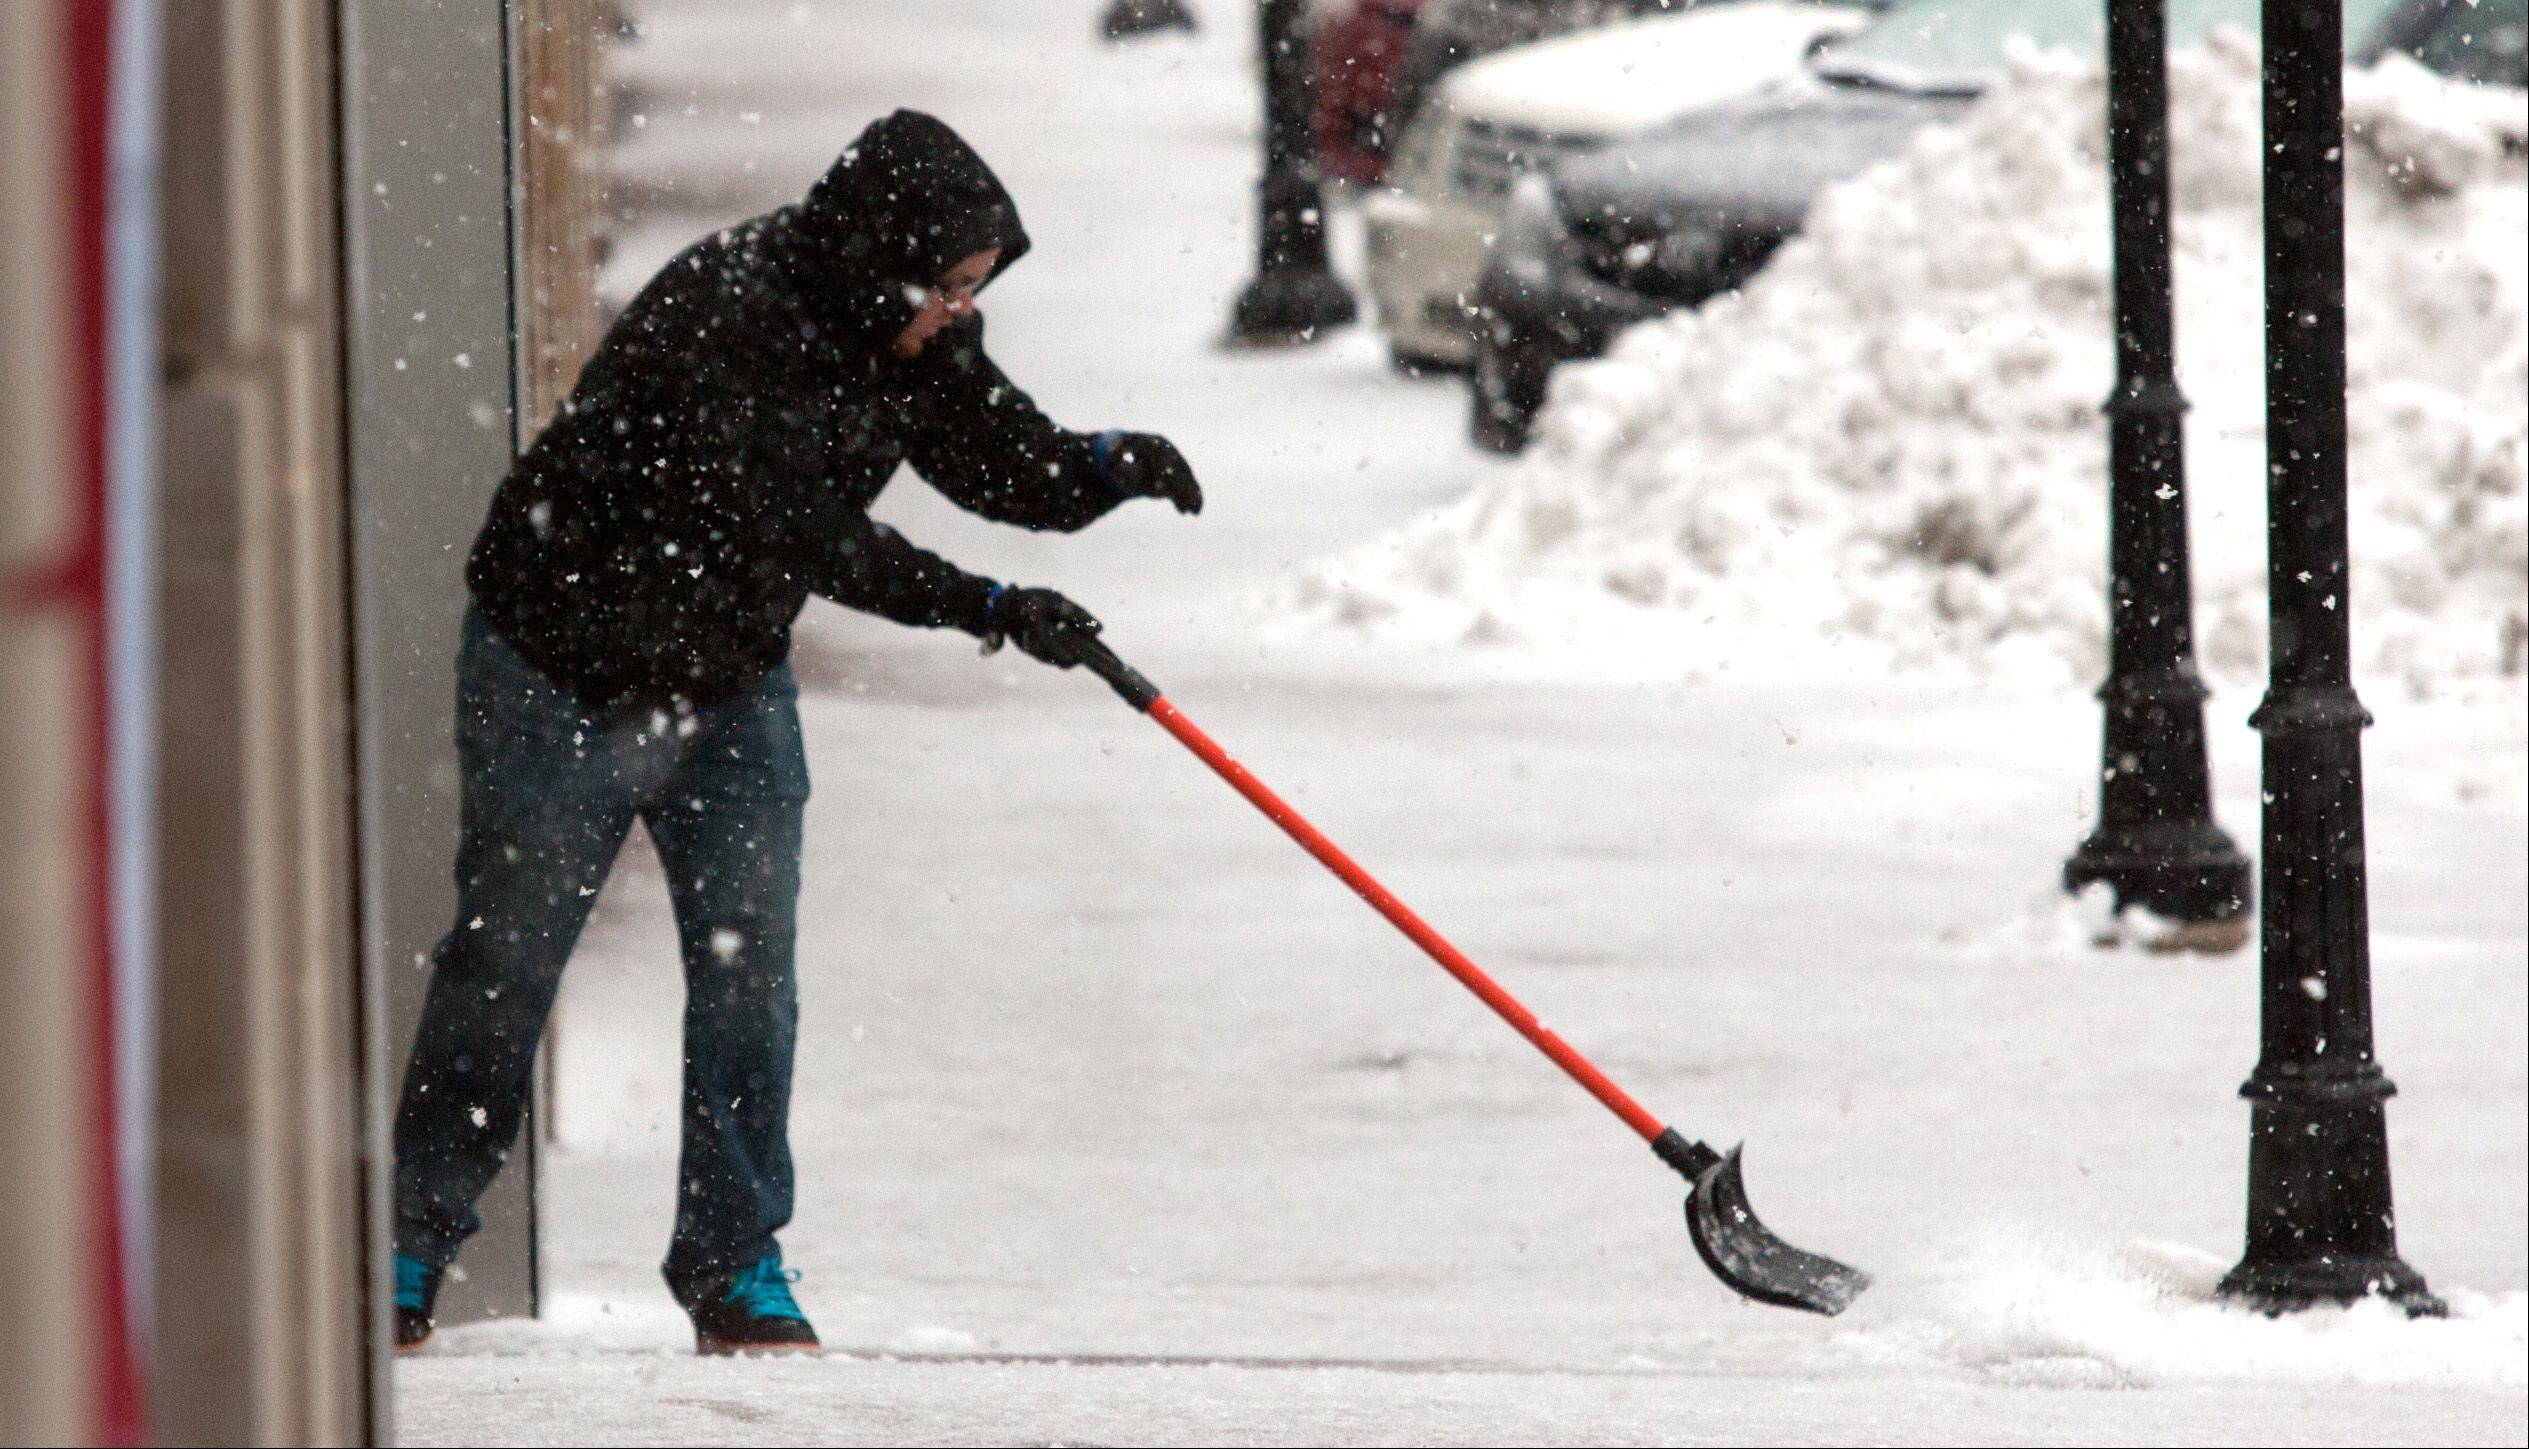 An Apple Store employee clears the sidewalk, as a winter storm passes through downtown Naperville.